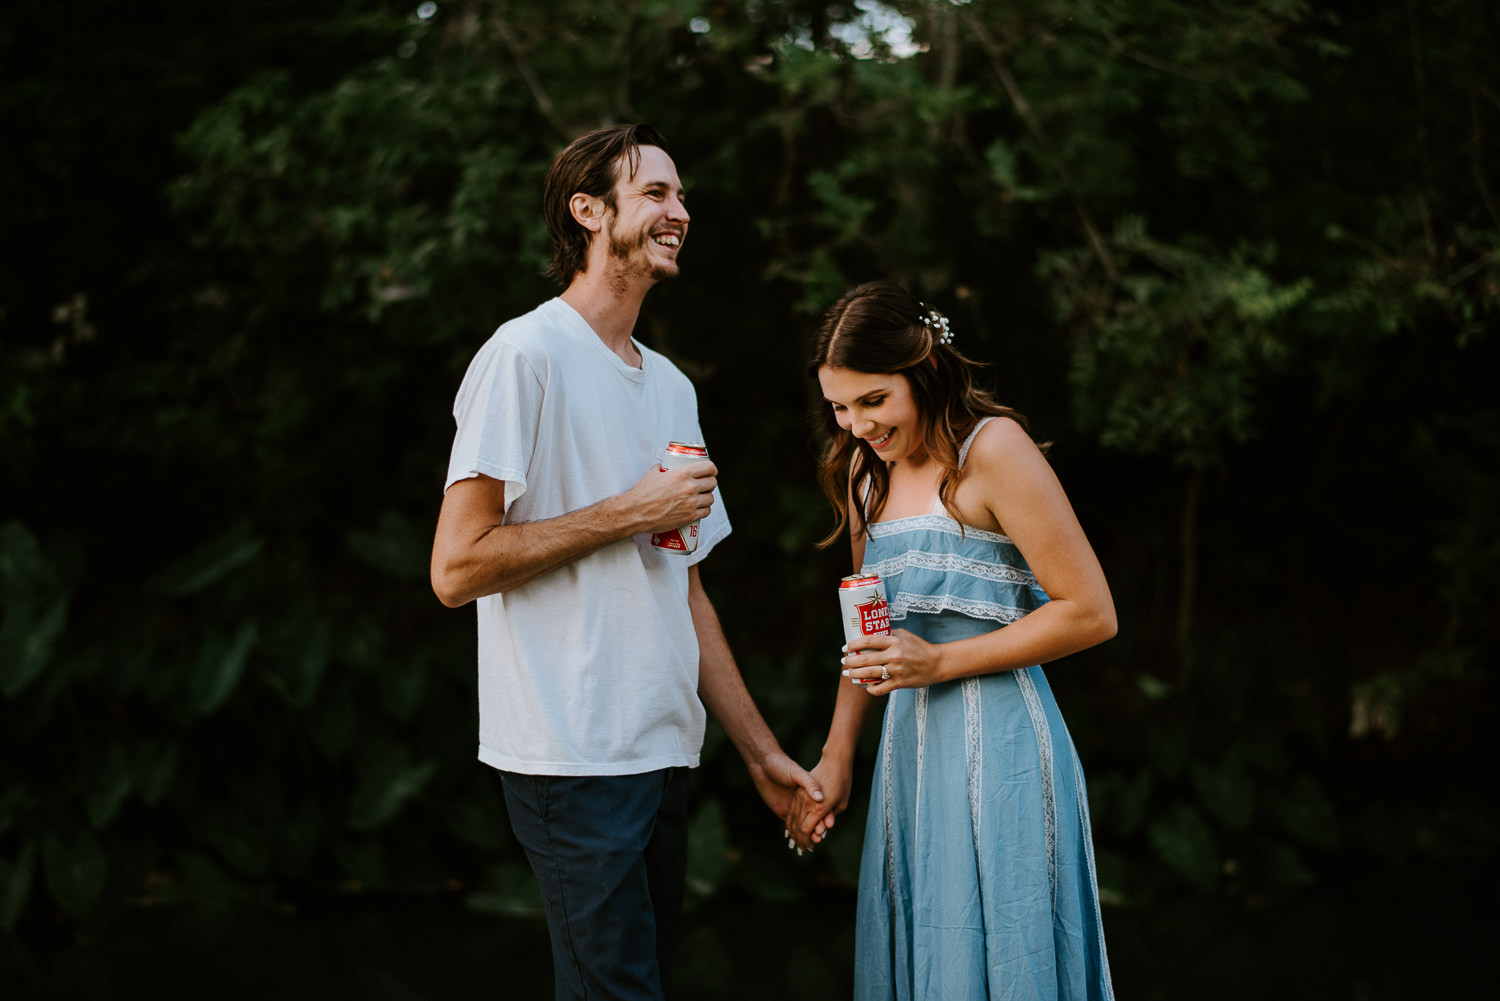 Engagement photos with Lone Star beer